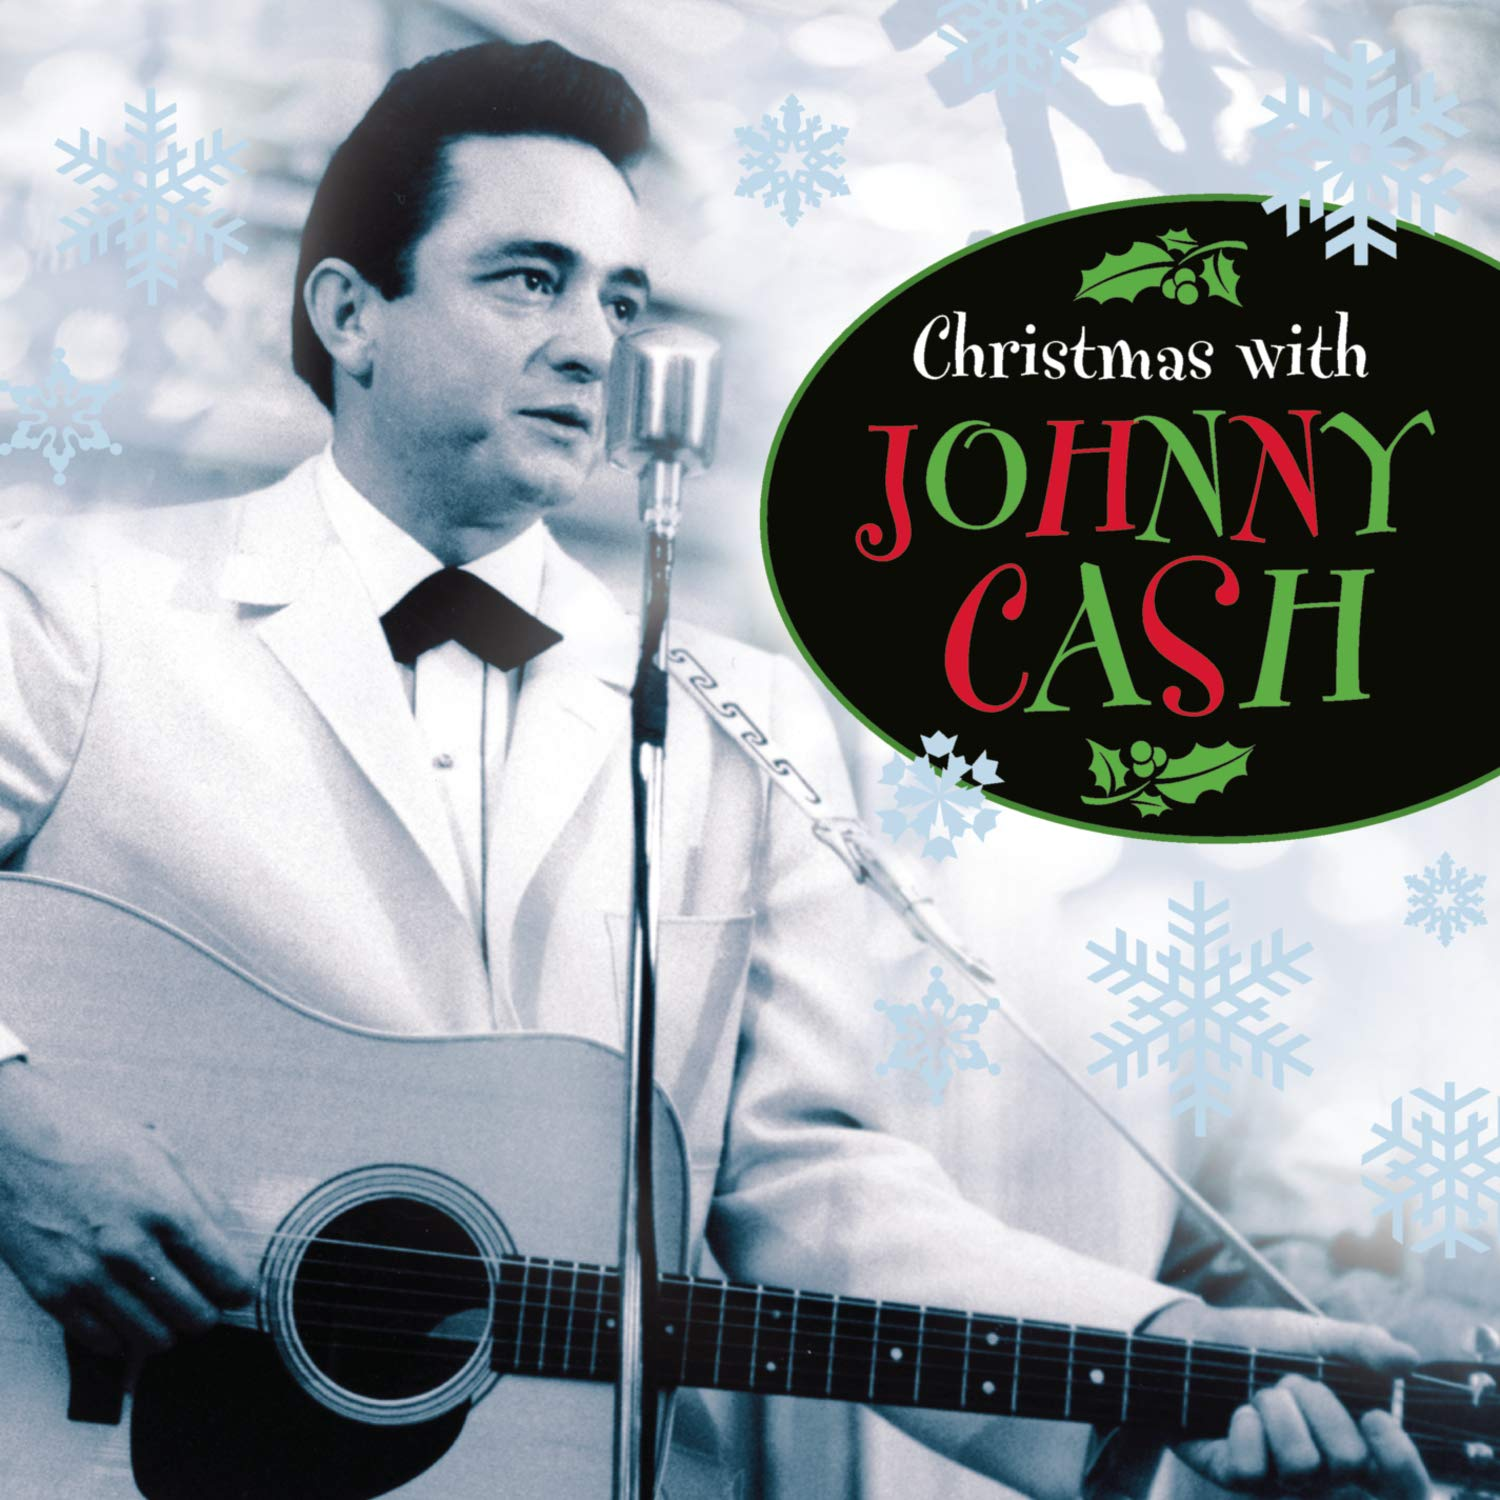 Johnny Cash - Christmas with Johnny Cash - Amazon.com Music